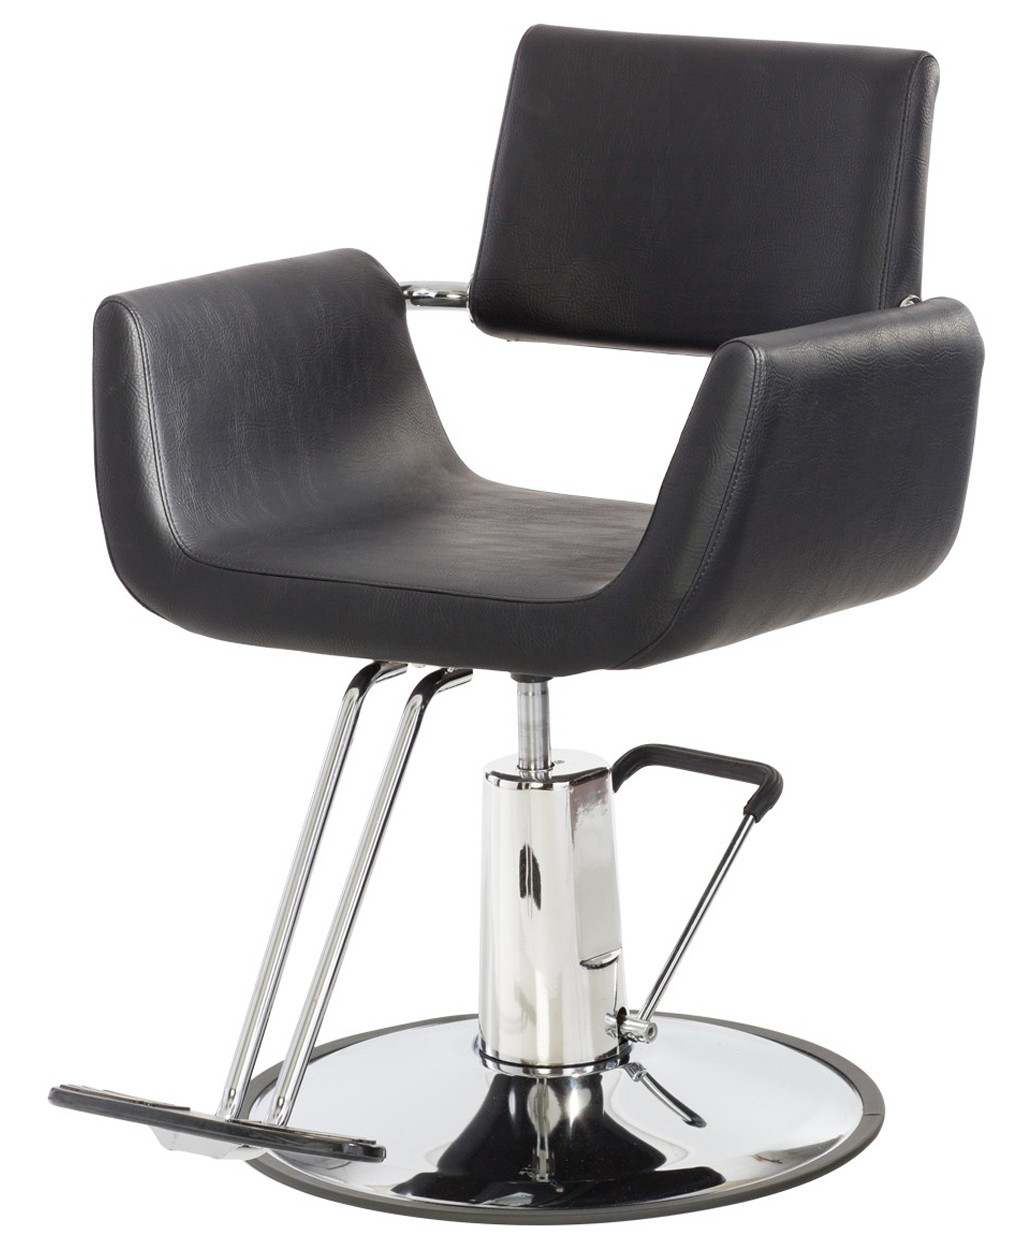 4 Operator Echo & Miami Salon Package Echo Styling Chair